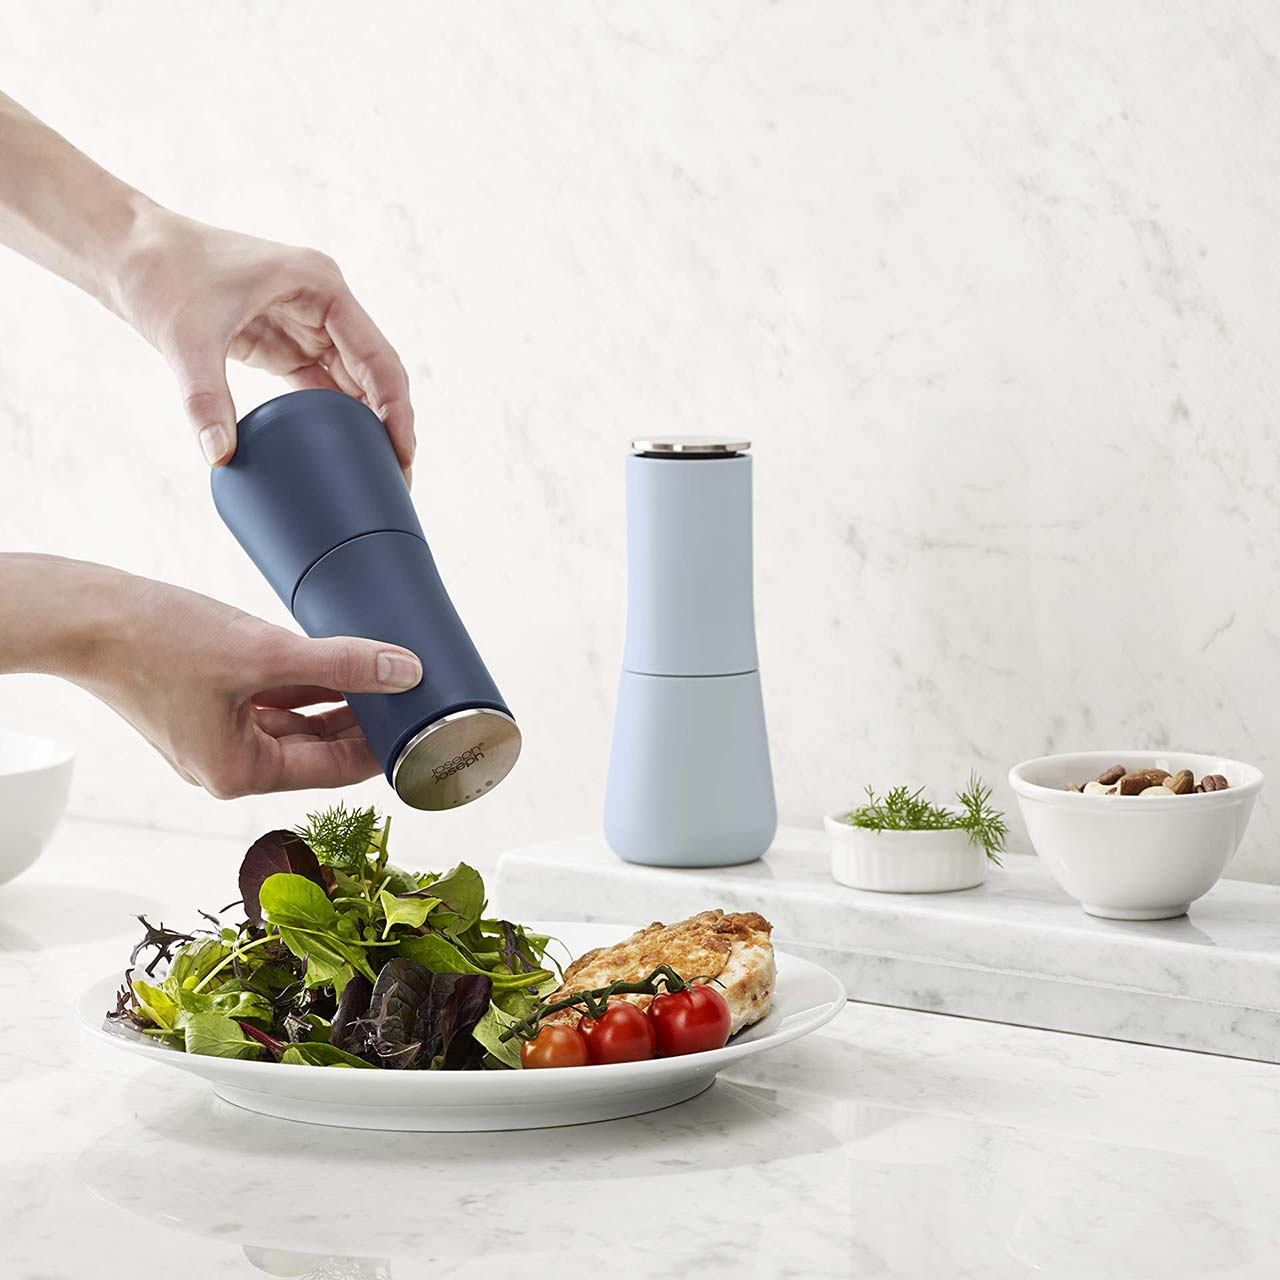 JOSEPH JOSEPH Milltop Sky No-Spill Salt & Pepper Mills | the design gift shop